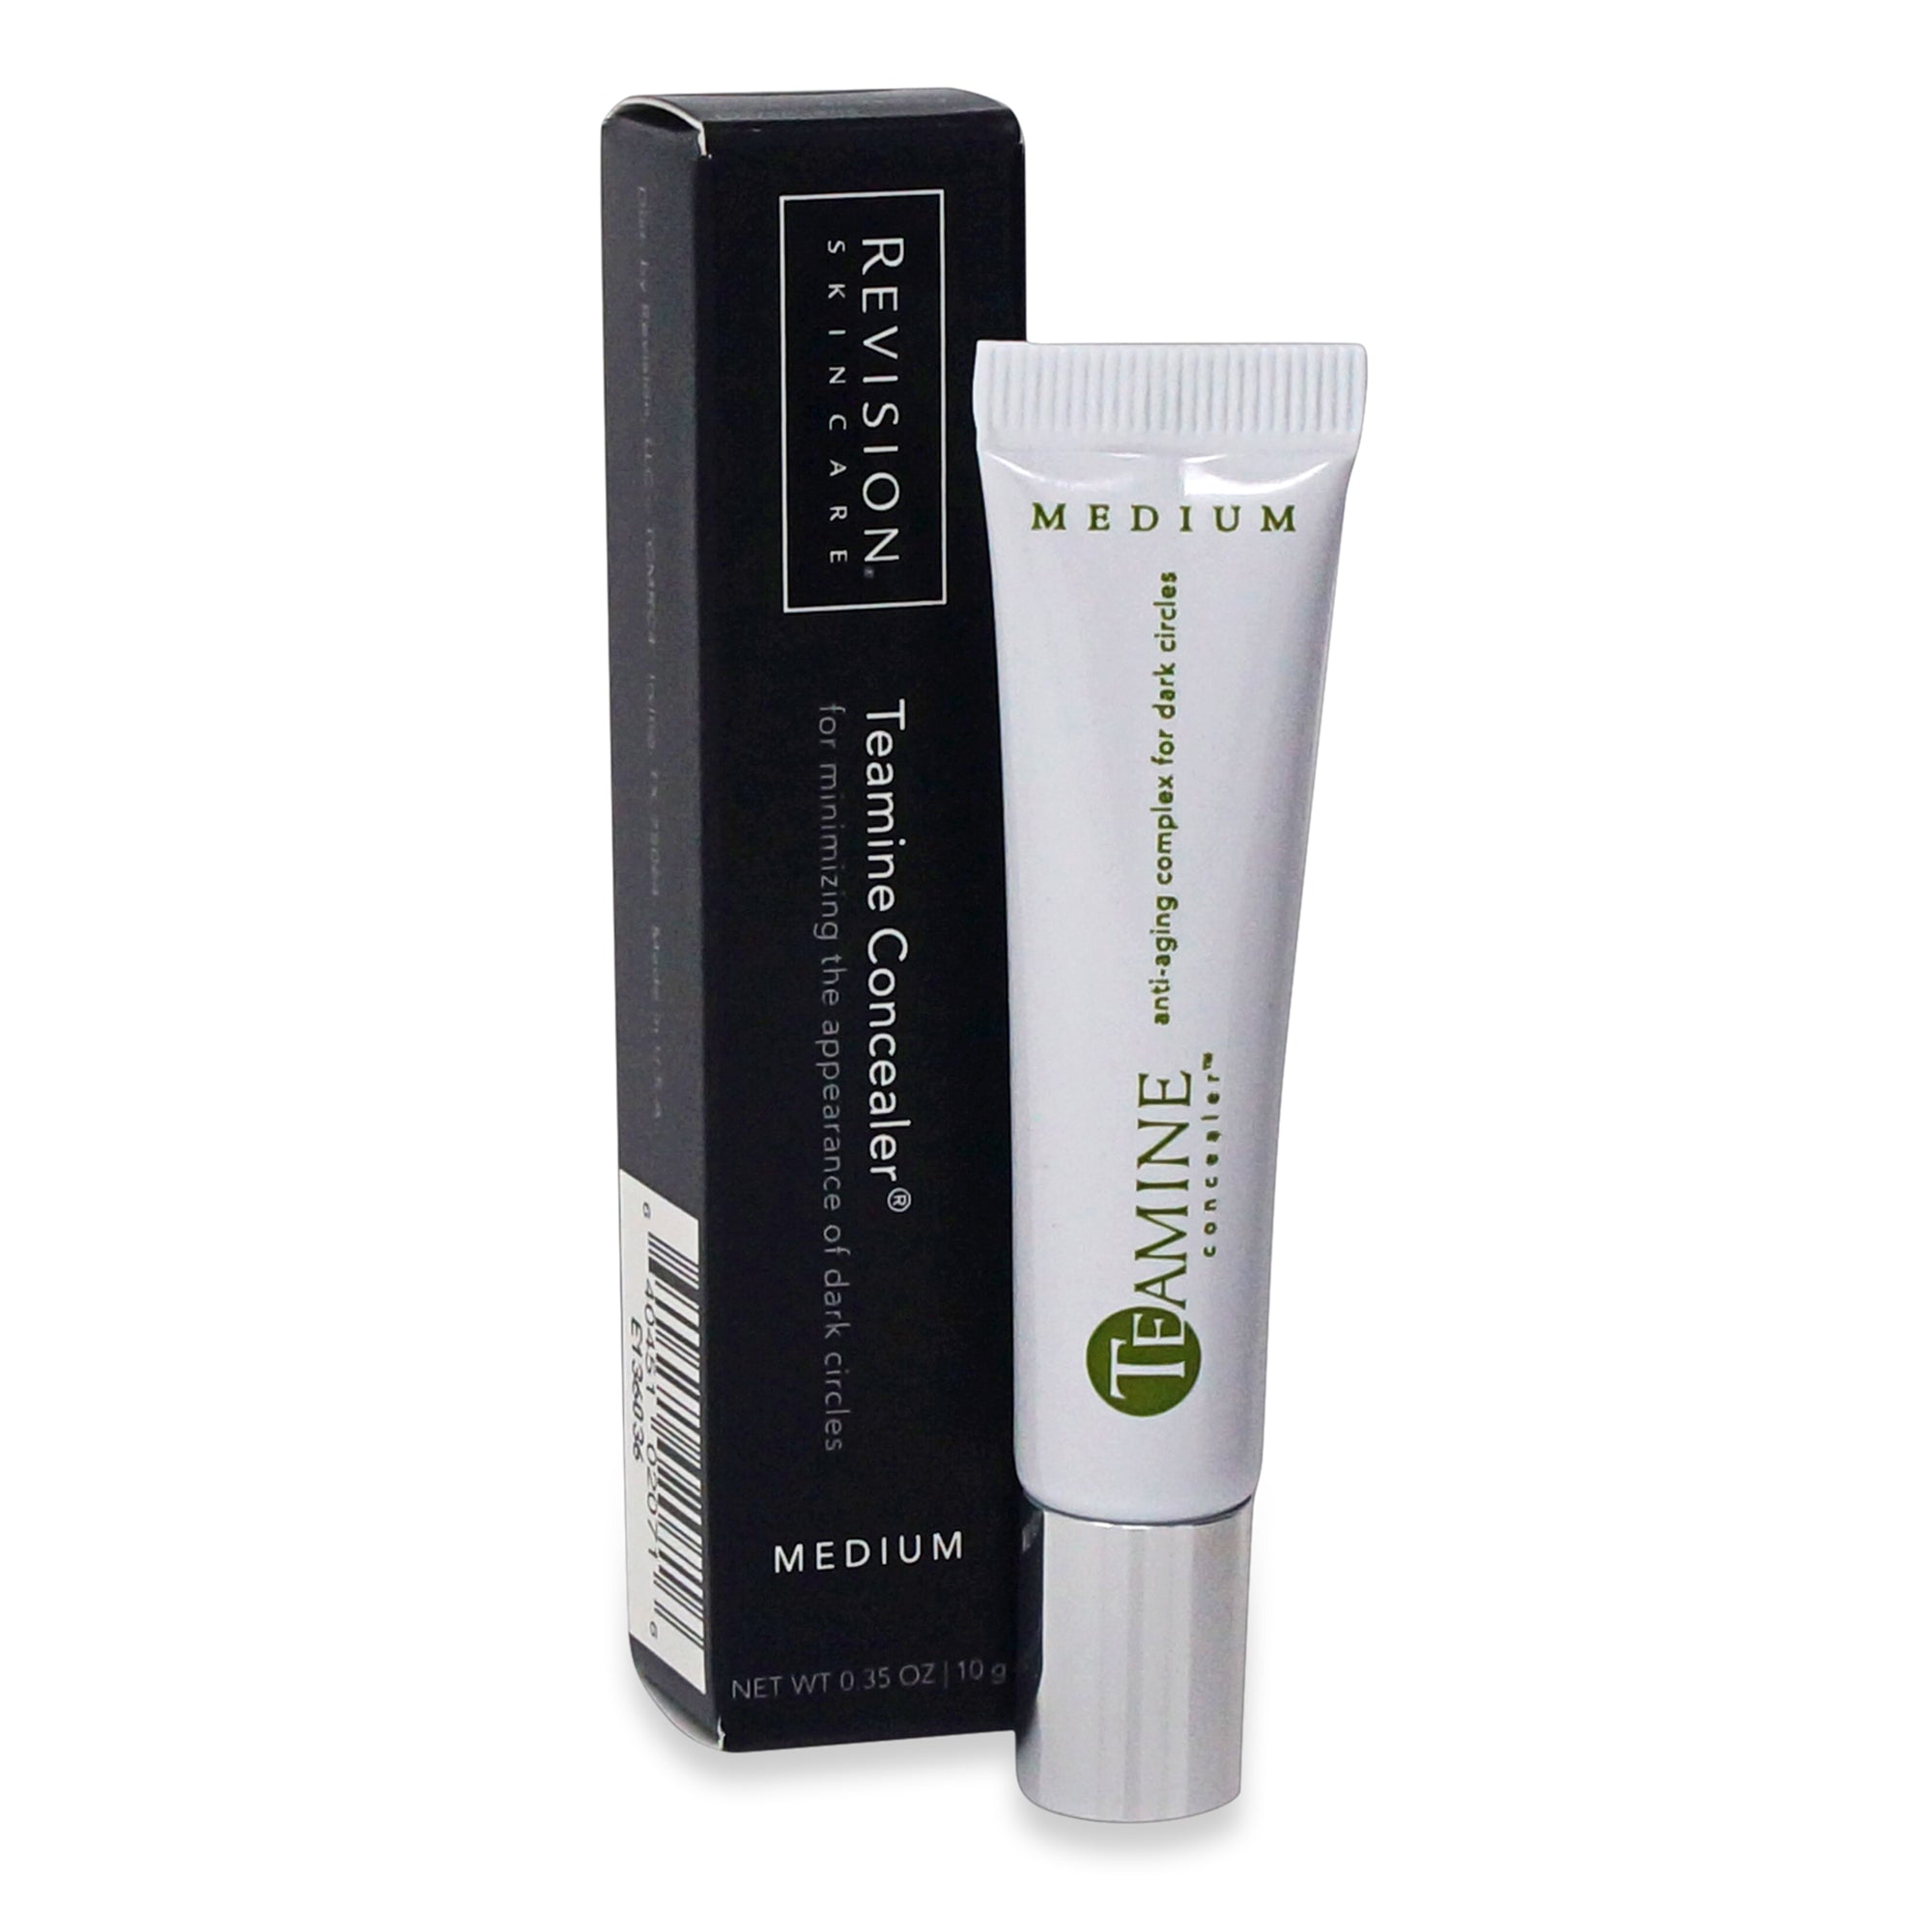 REVISION ~ TEAMINE CONCEALER MEDIUM ~ 0.35 OZ TUBE